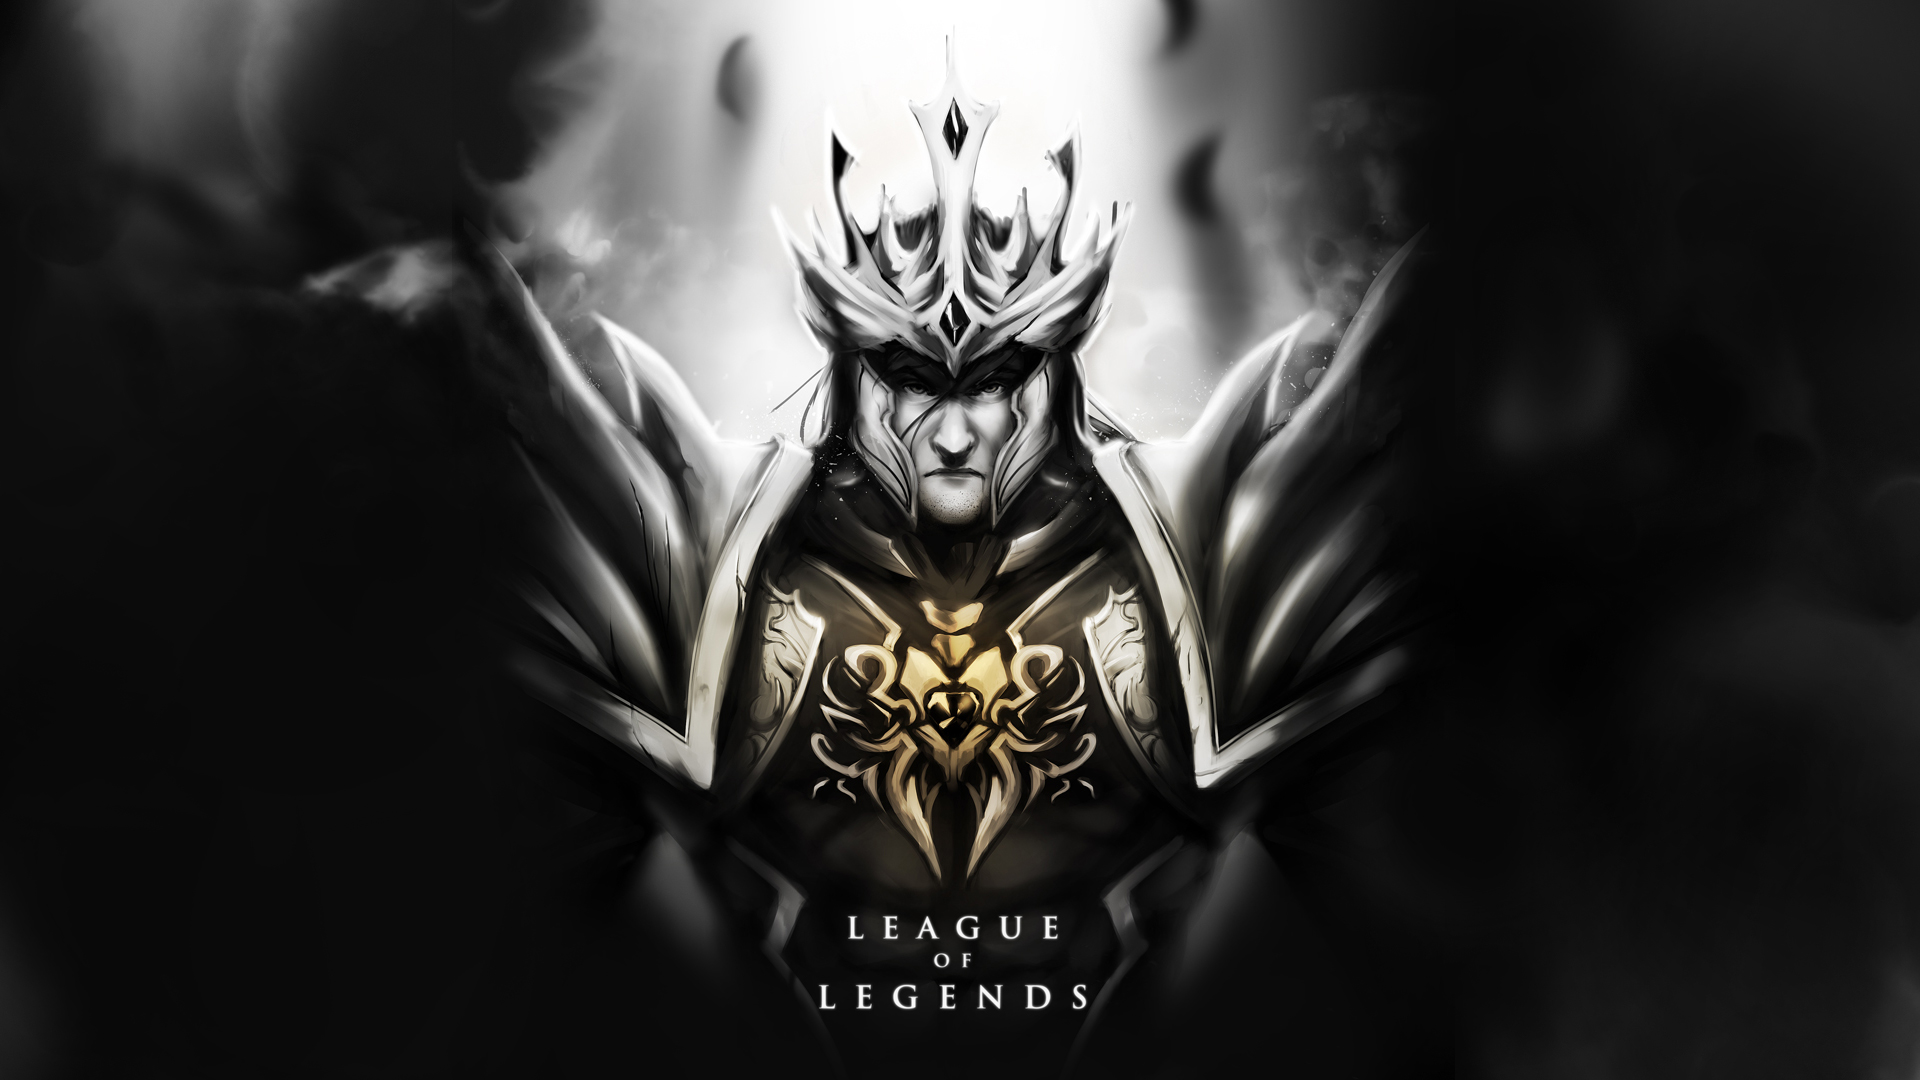 League of Legends wallpaper 97